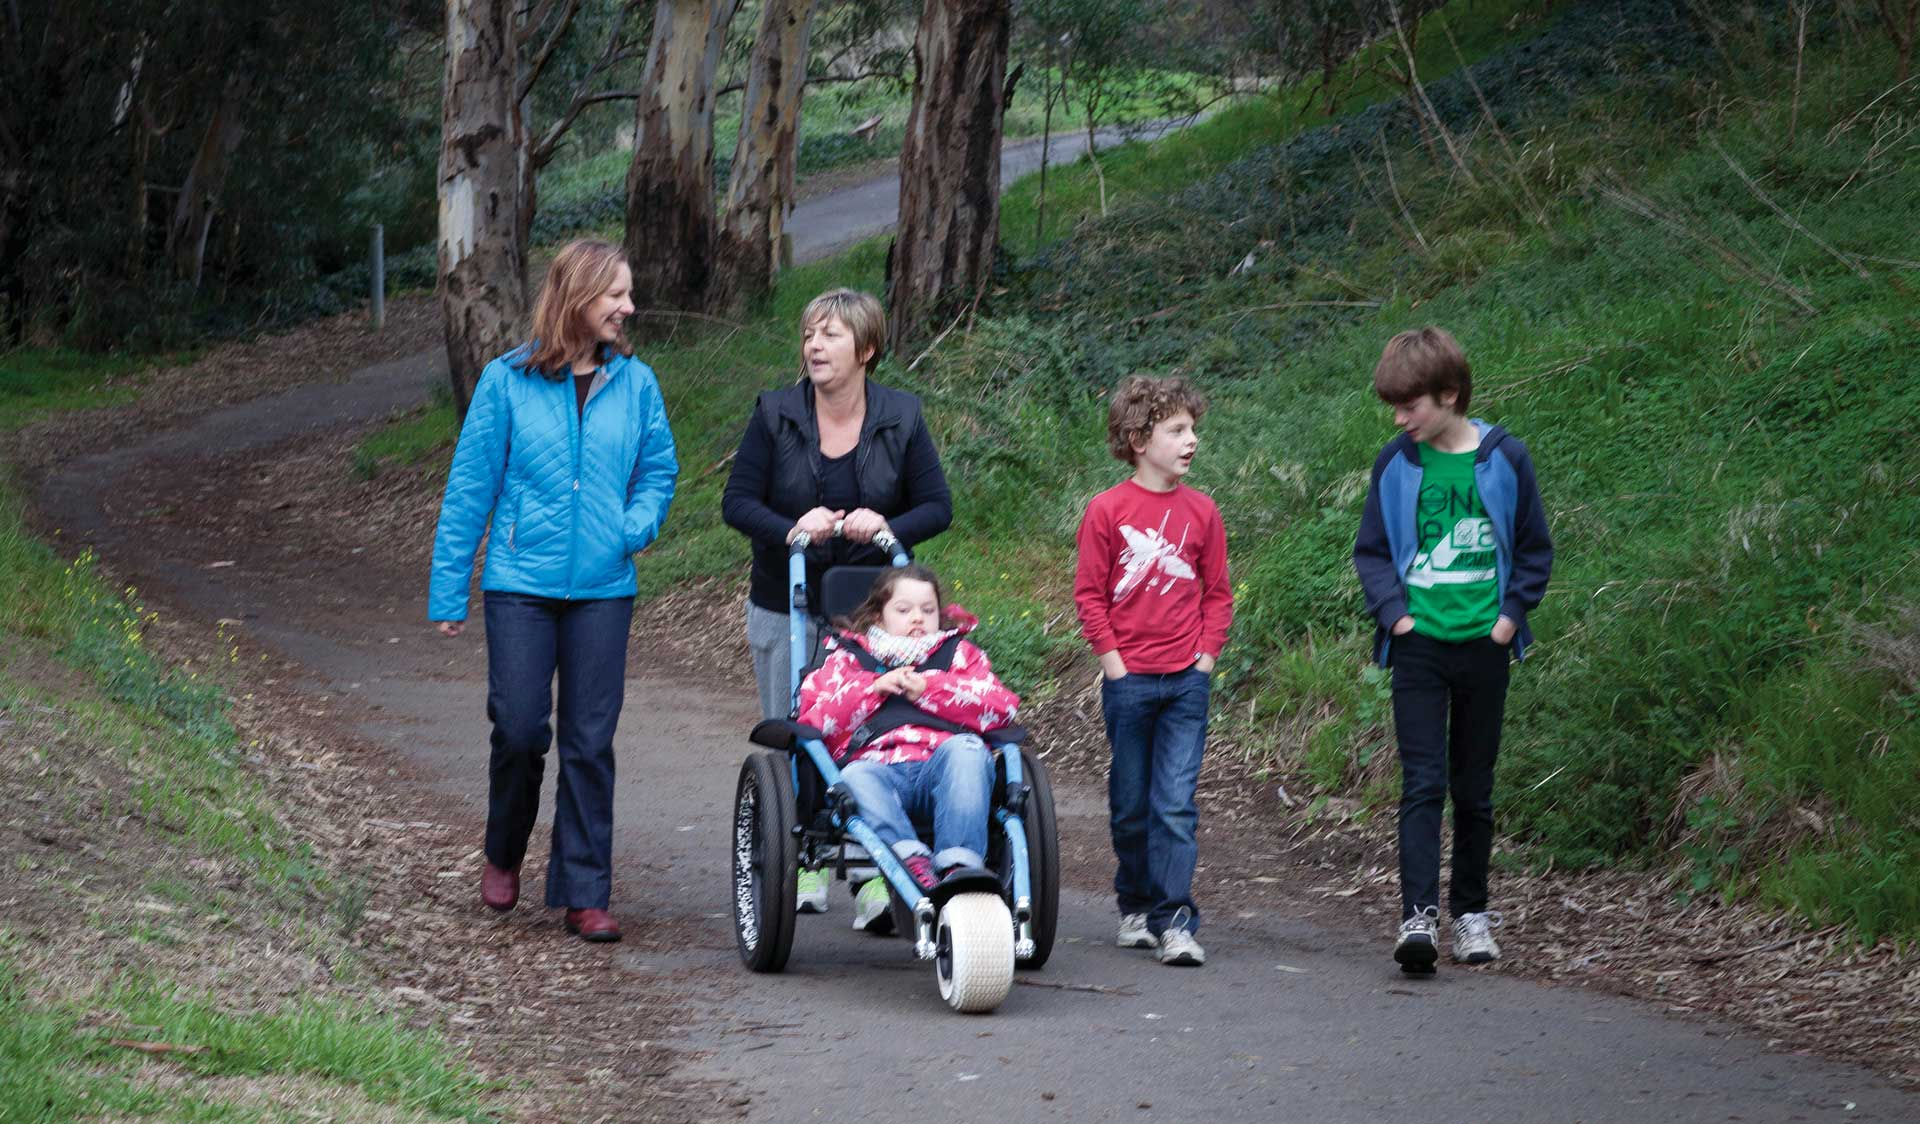 Two adults and three children, one of which is in a wheel chair, stroll along a path at Brimbank Park.